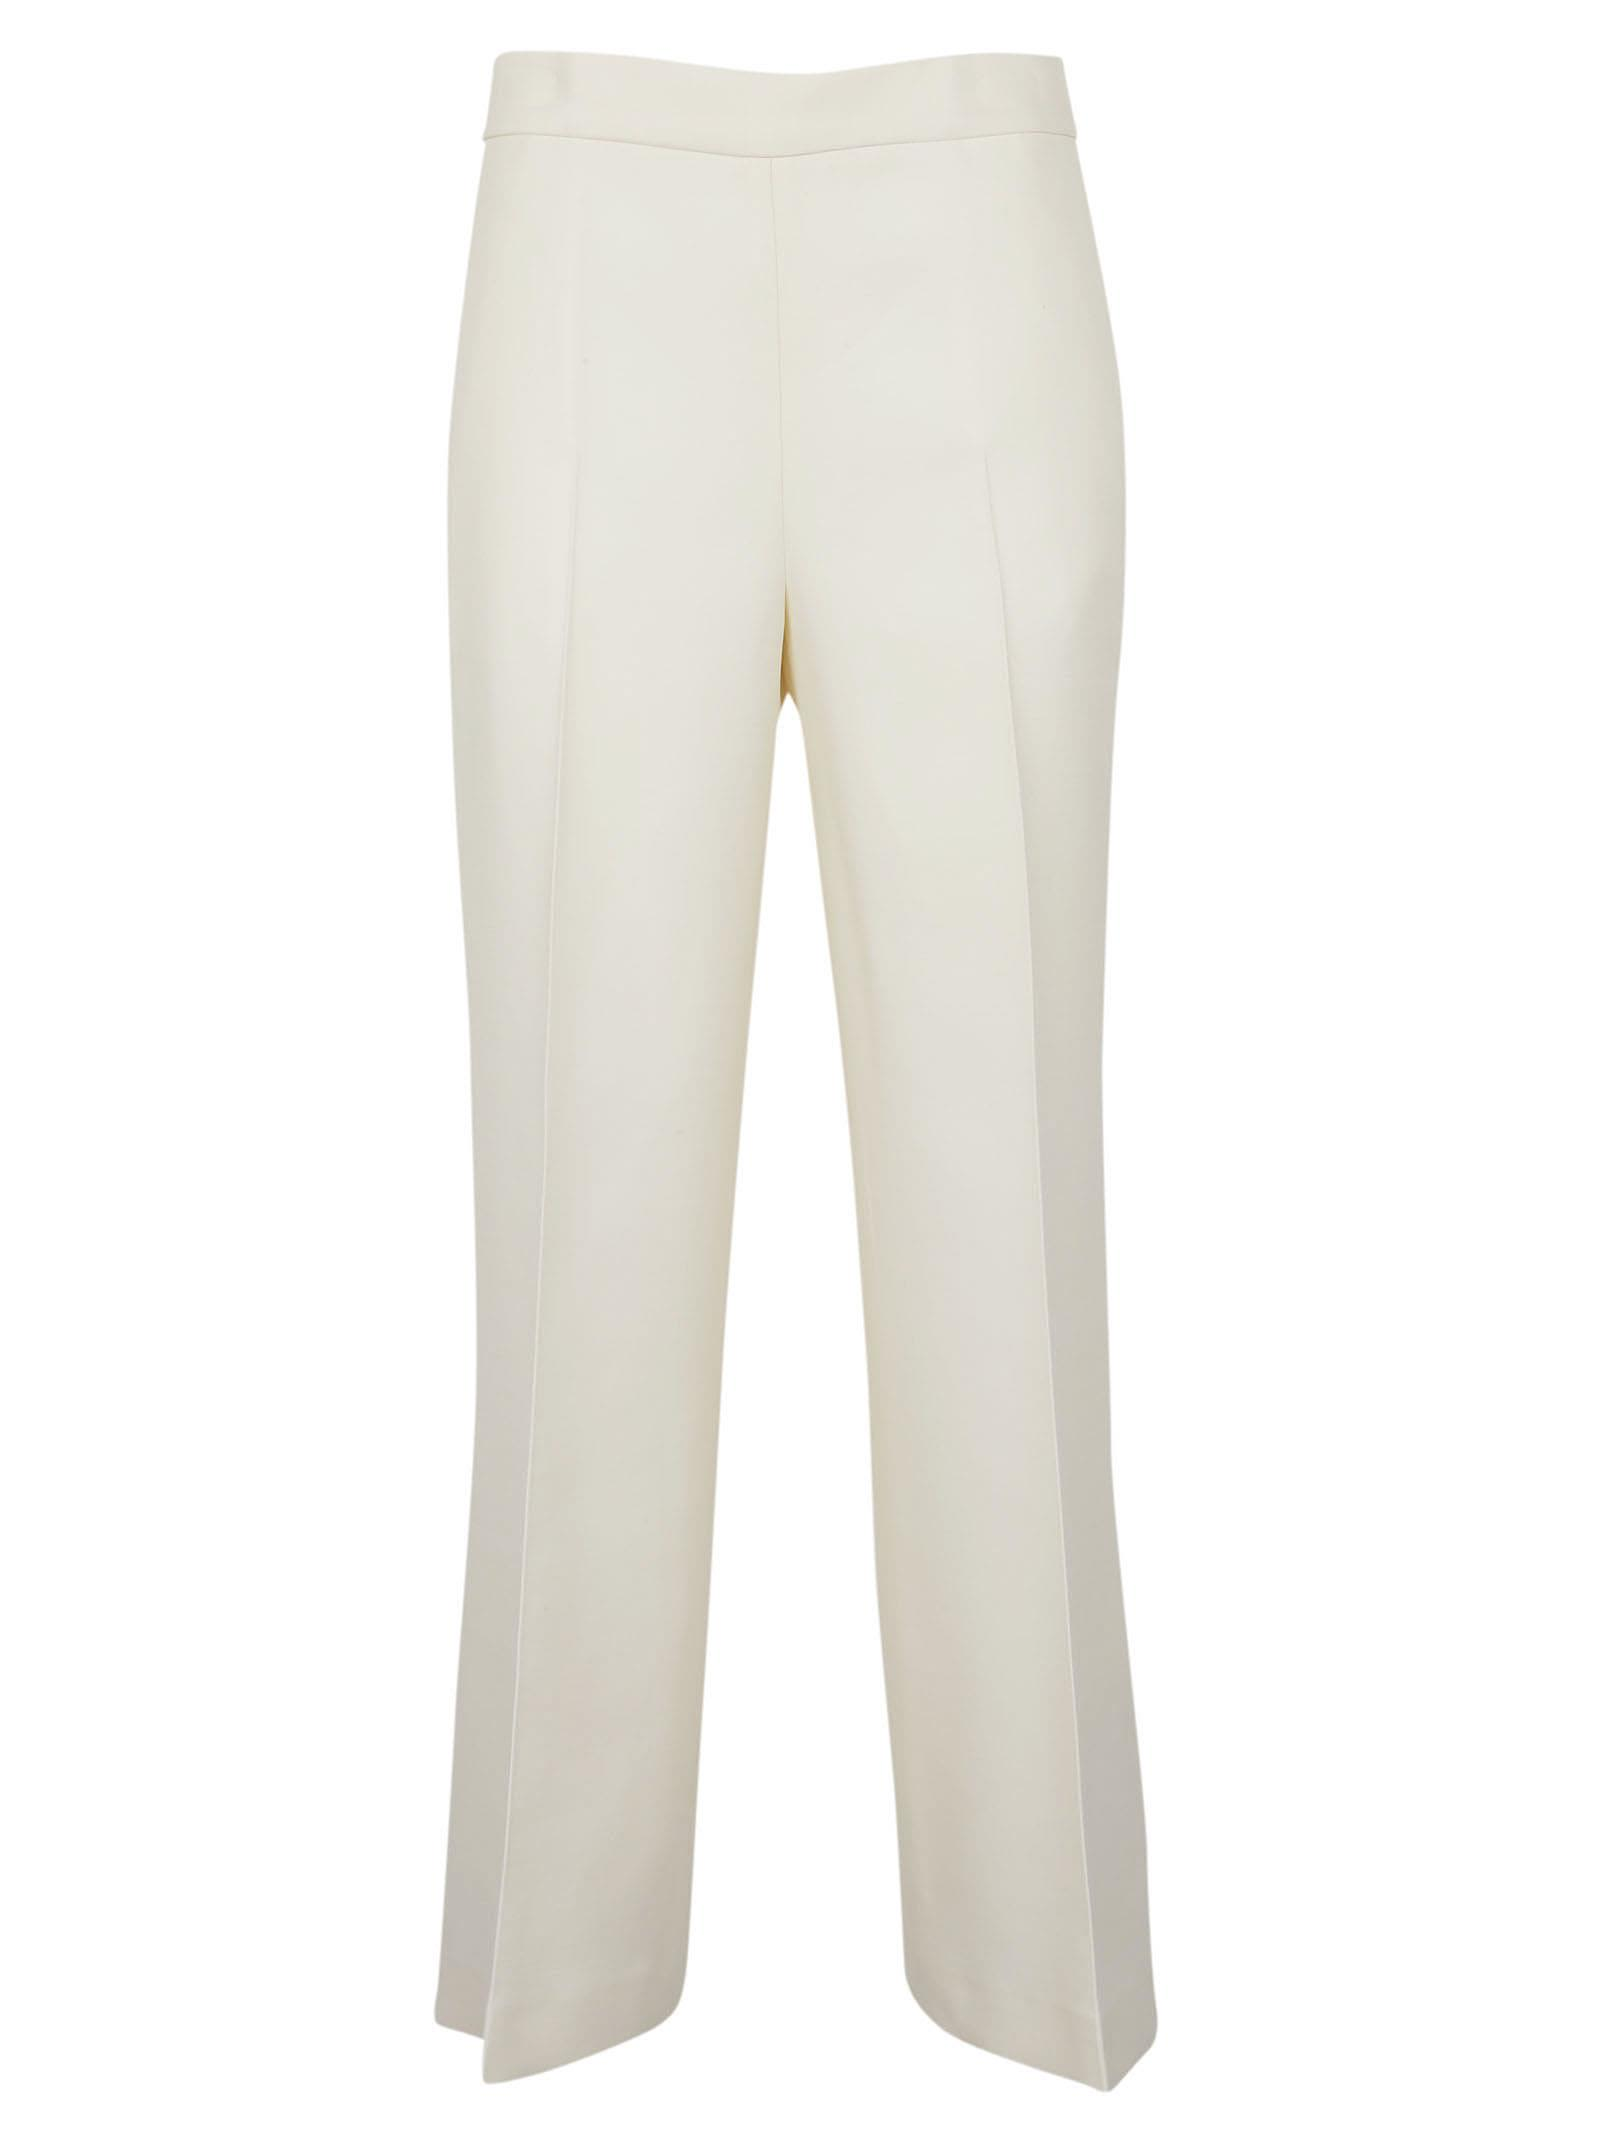 Fendi High Waisted Ankle Length Trousers